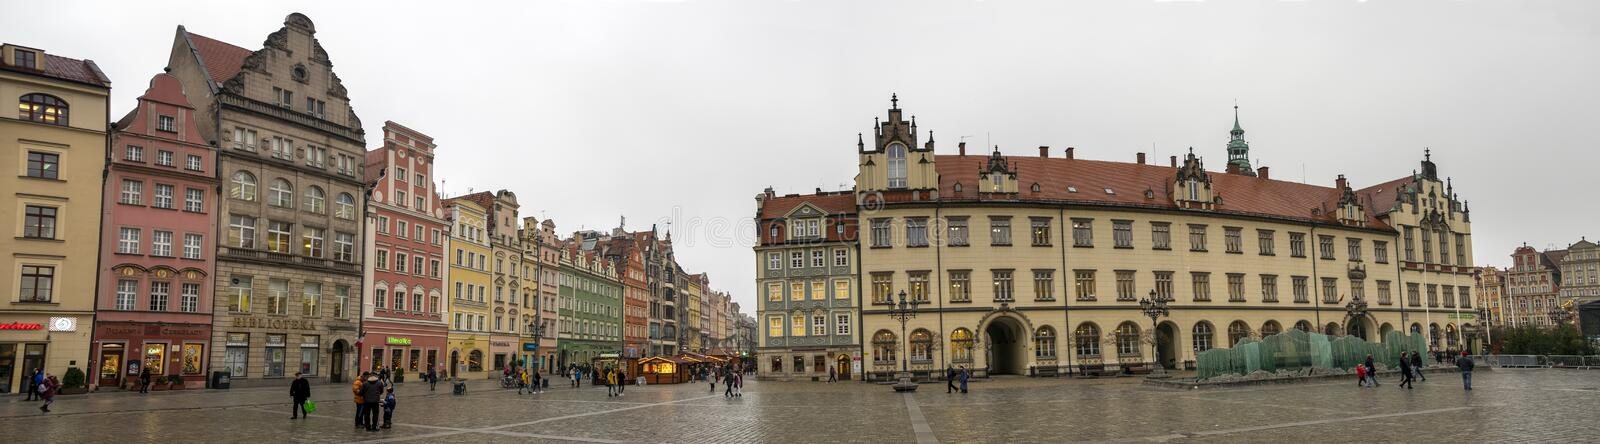 Very large panoramic view of Market Square in Wroclaw, att cold winter day. Poland. WROCLAW, POLAND - DECEMBER 13, 2019: Very large panoramic view of Market stock images